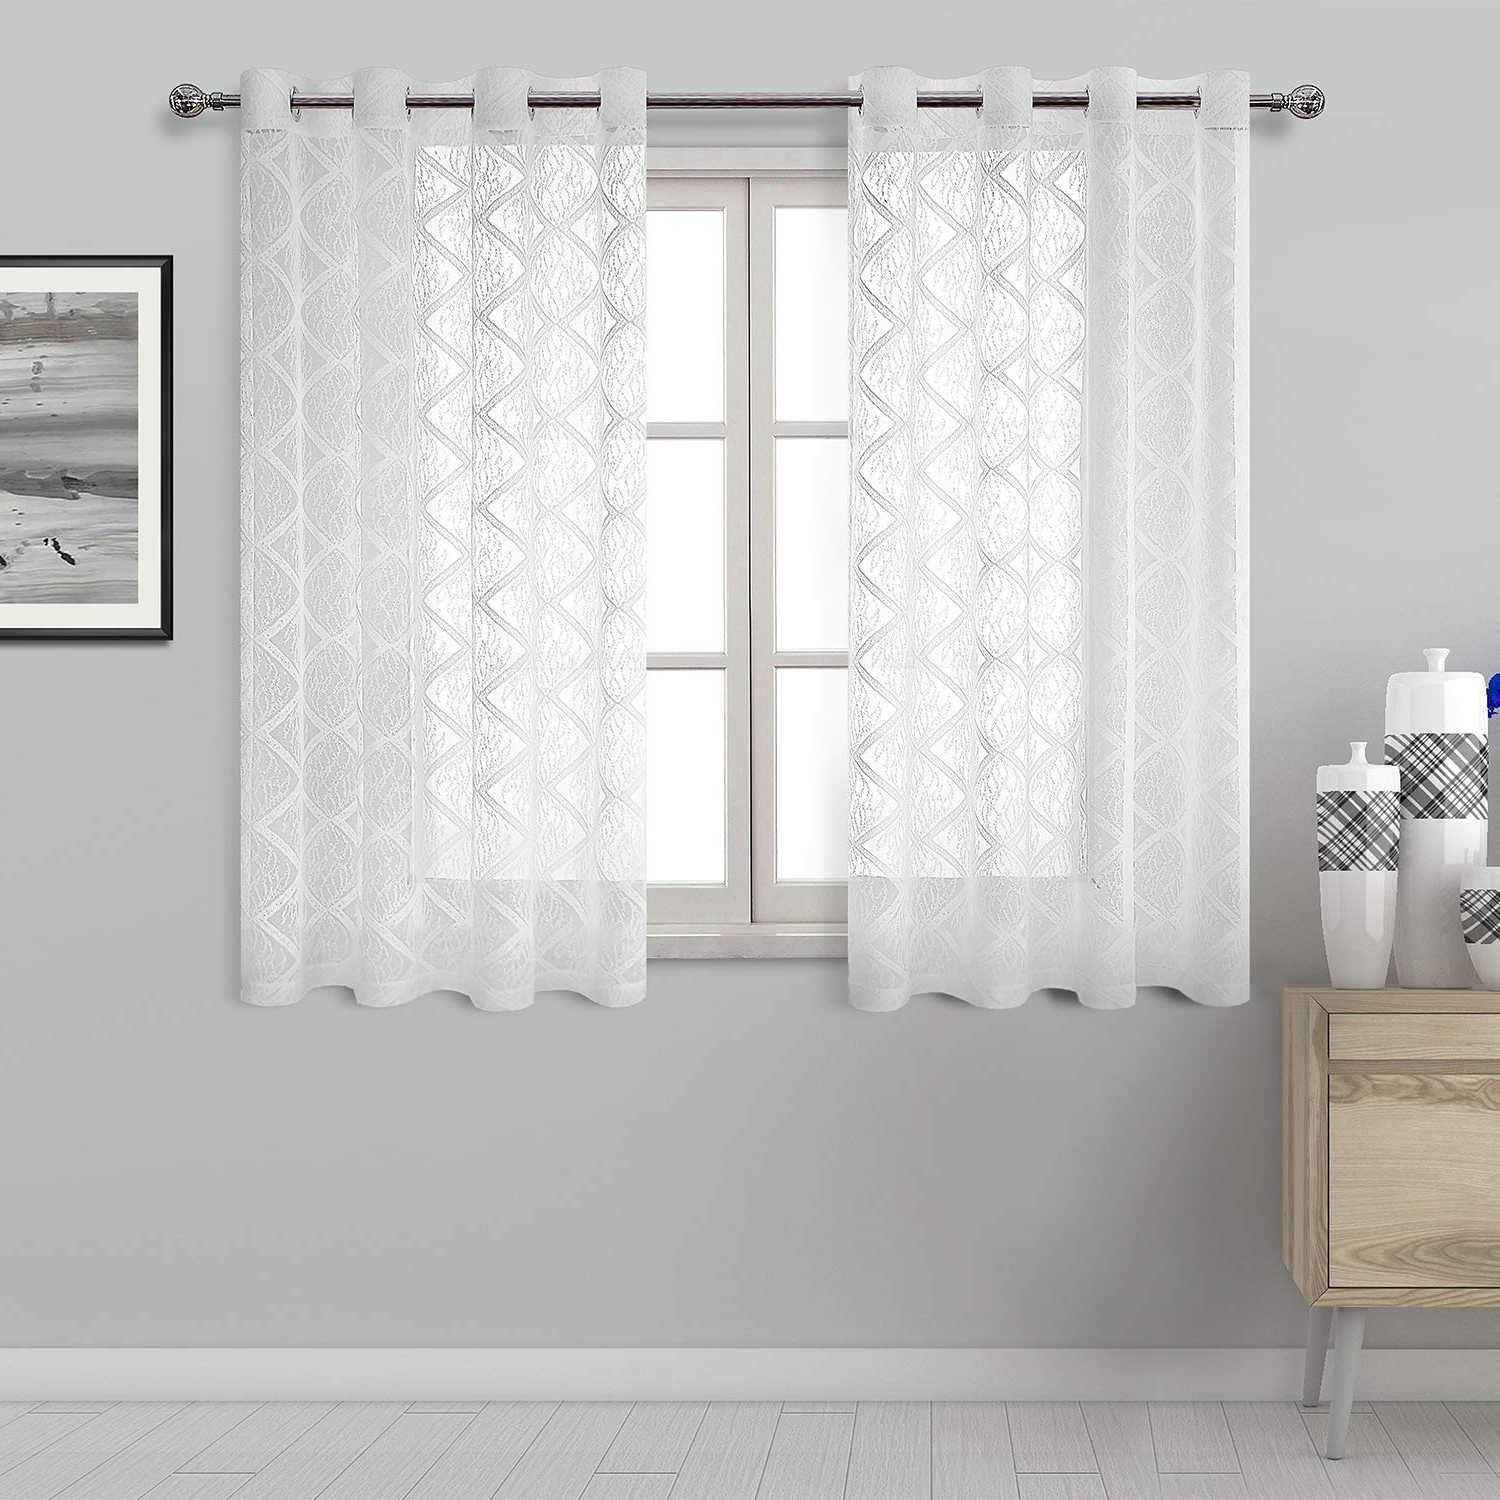 Porch & Den Park Point Blush 24 Inch Tier Pairs In Most Current Dwcn Lace White Sheer Curtains – Grommet Top Geometric Pattern Faux Linen Semi Voile Drapes Bedroom And Kitchen Short Curtains, 52 X 45 Inch Length, (View 17 of 20)